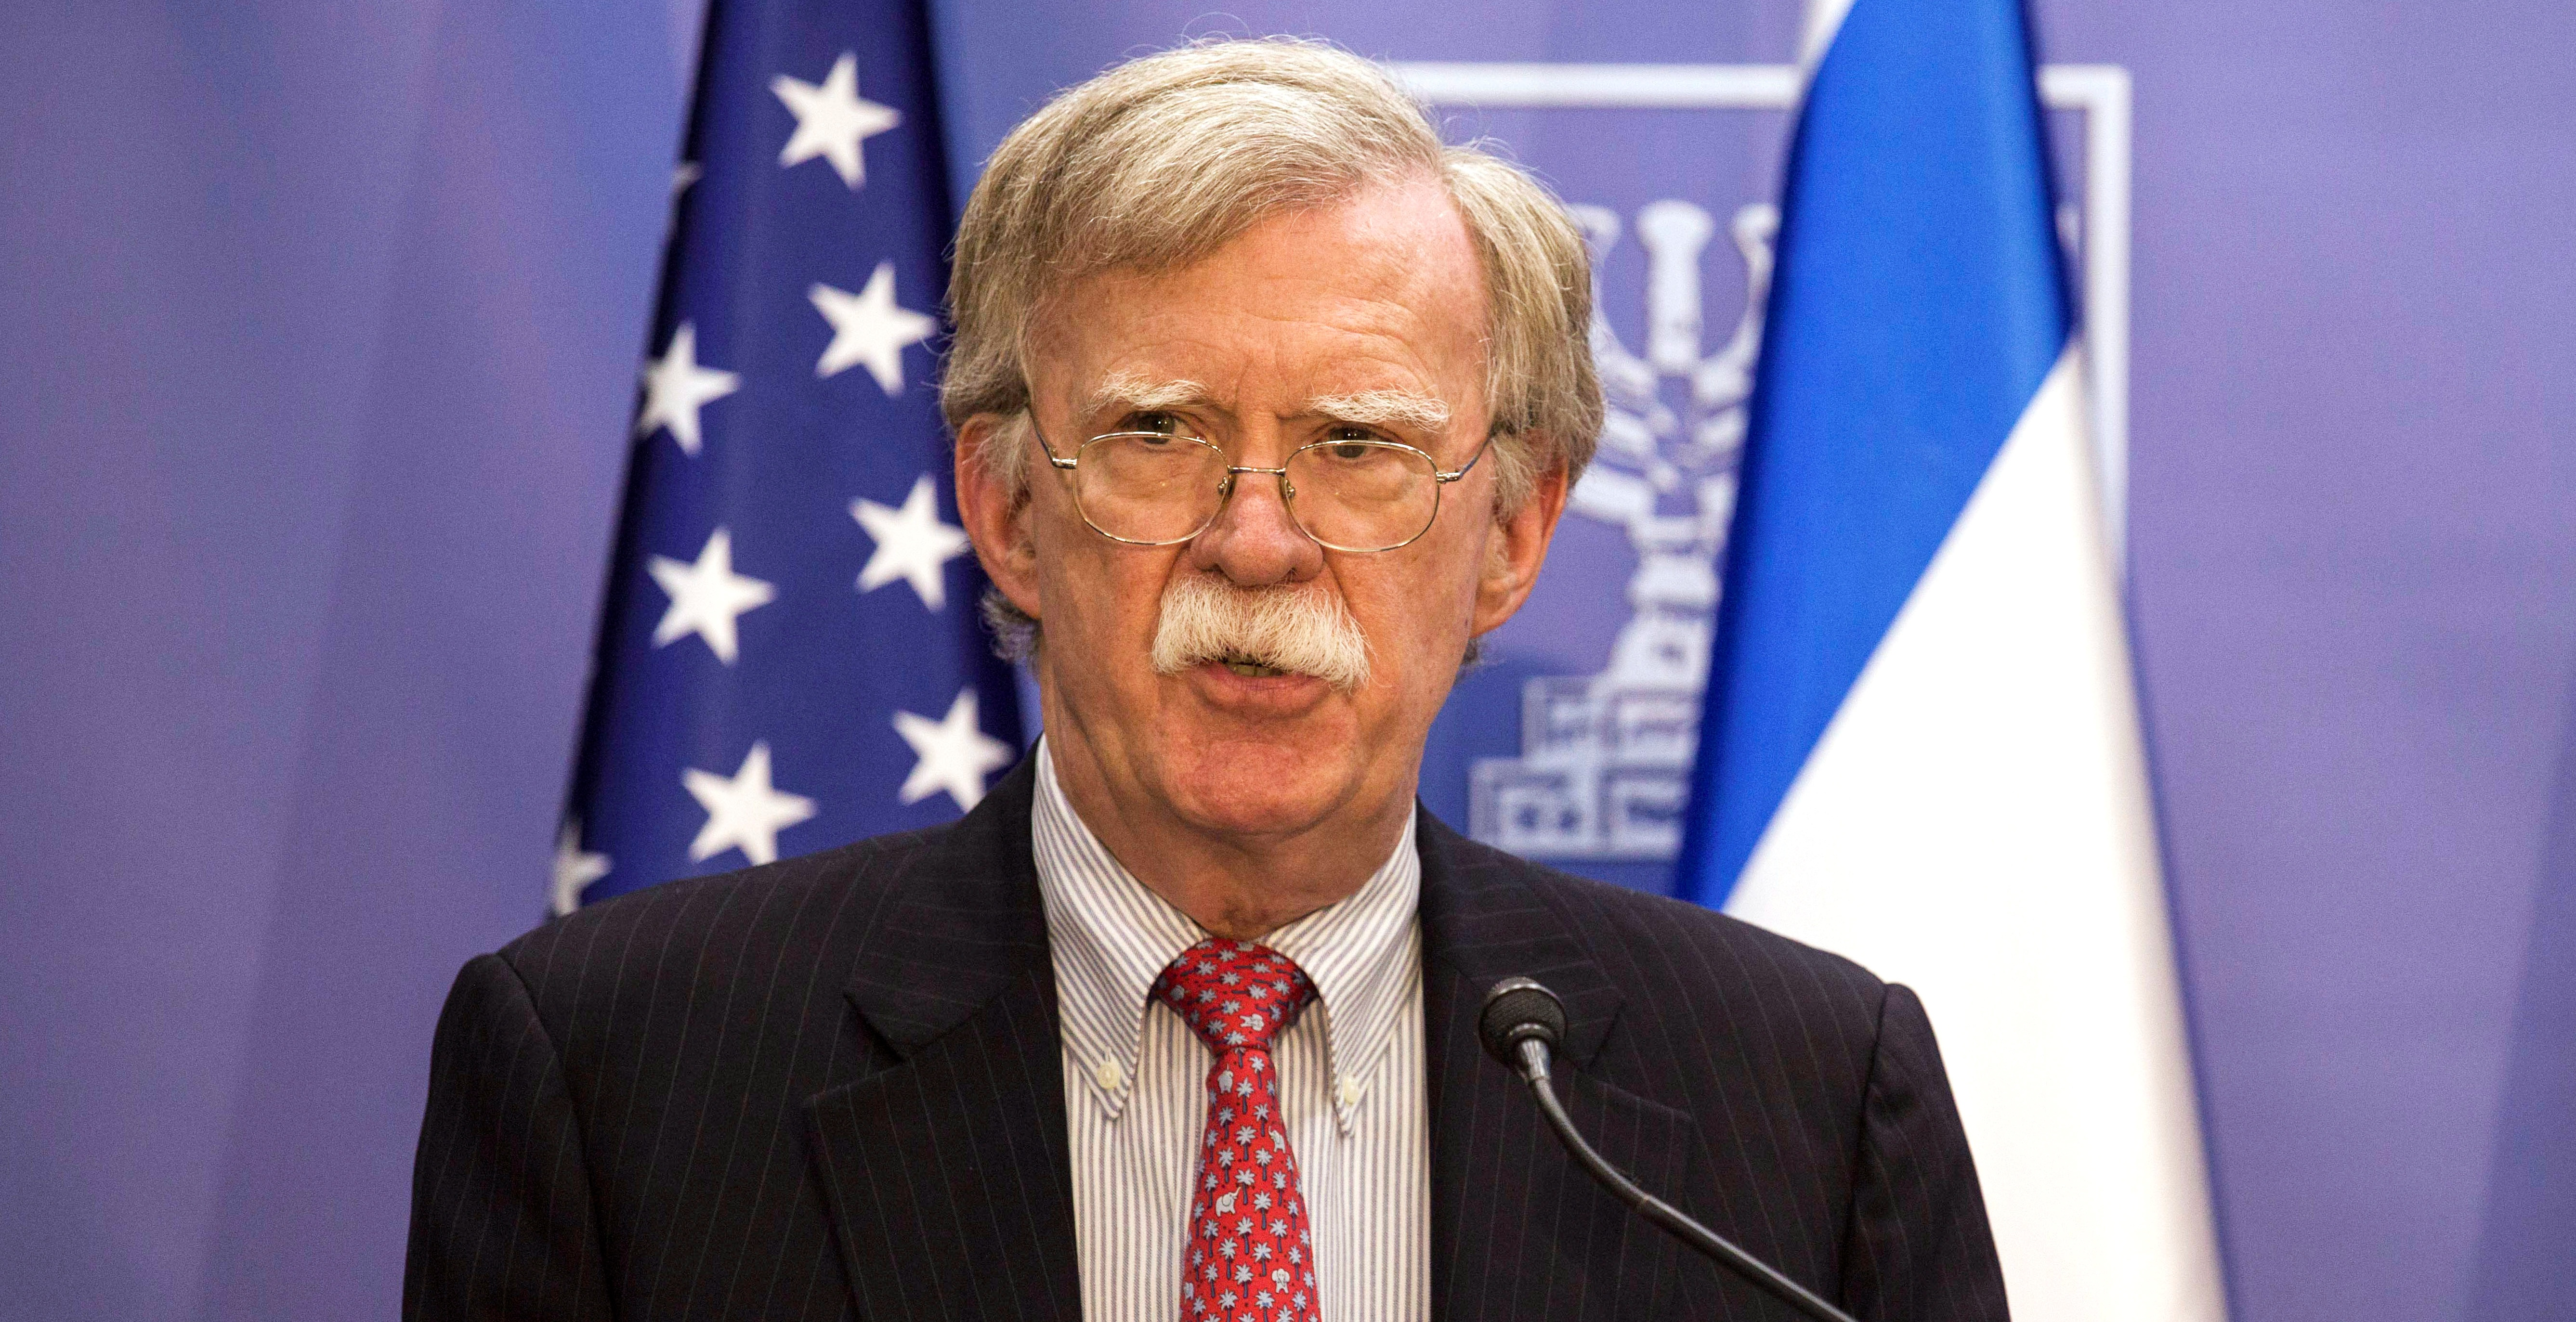 U.S. National Security Advisor John Bolton delivers joint statements with Israeli Prime Minister Benjamin Netanyahu in Jerusalem June 23, 2019. Tsafrir Abayov/Pool via REUTERS